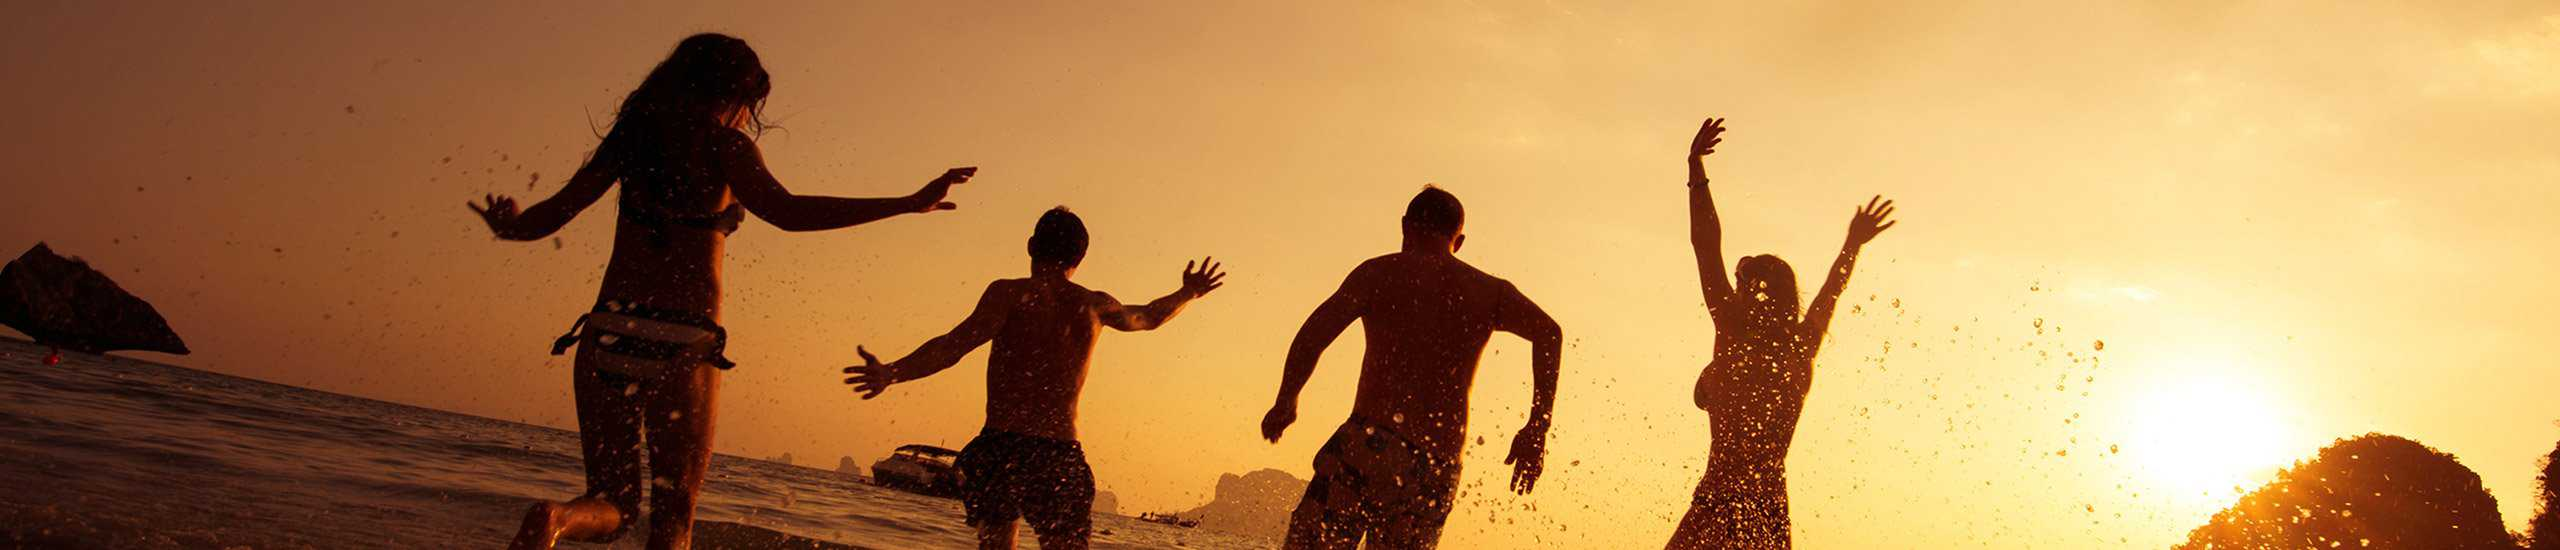 People jumping in water at the beach at sunset